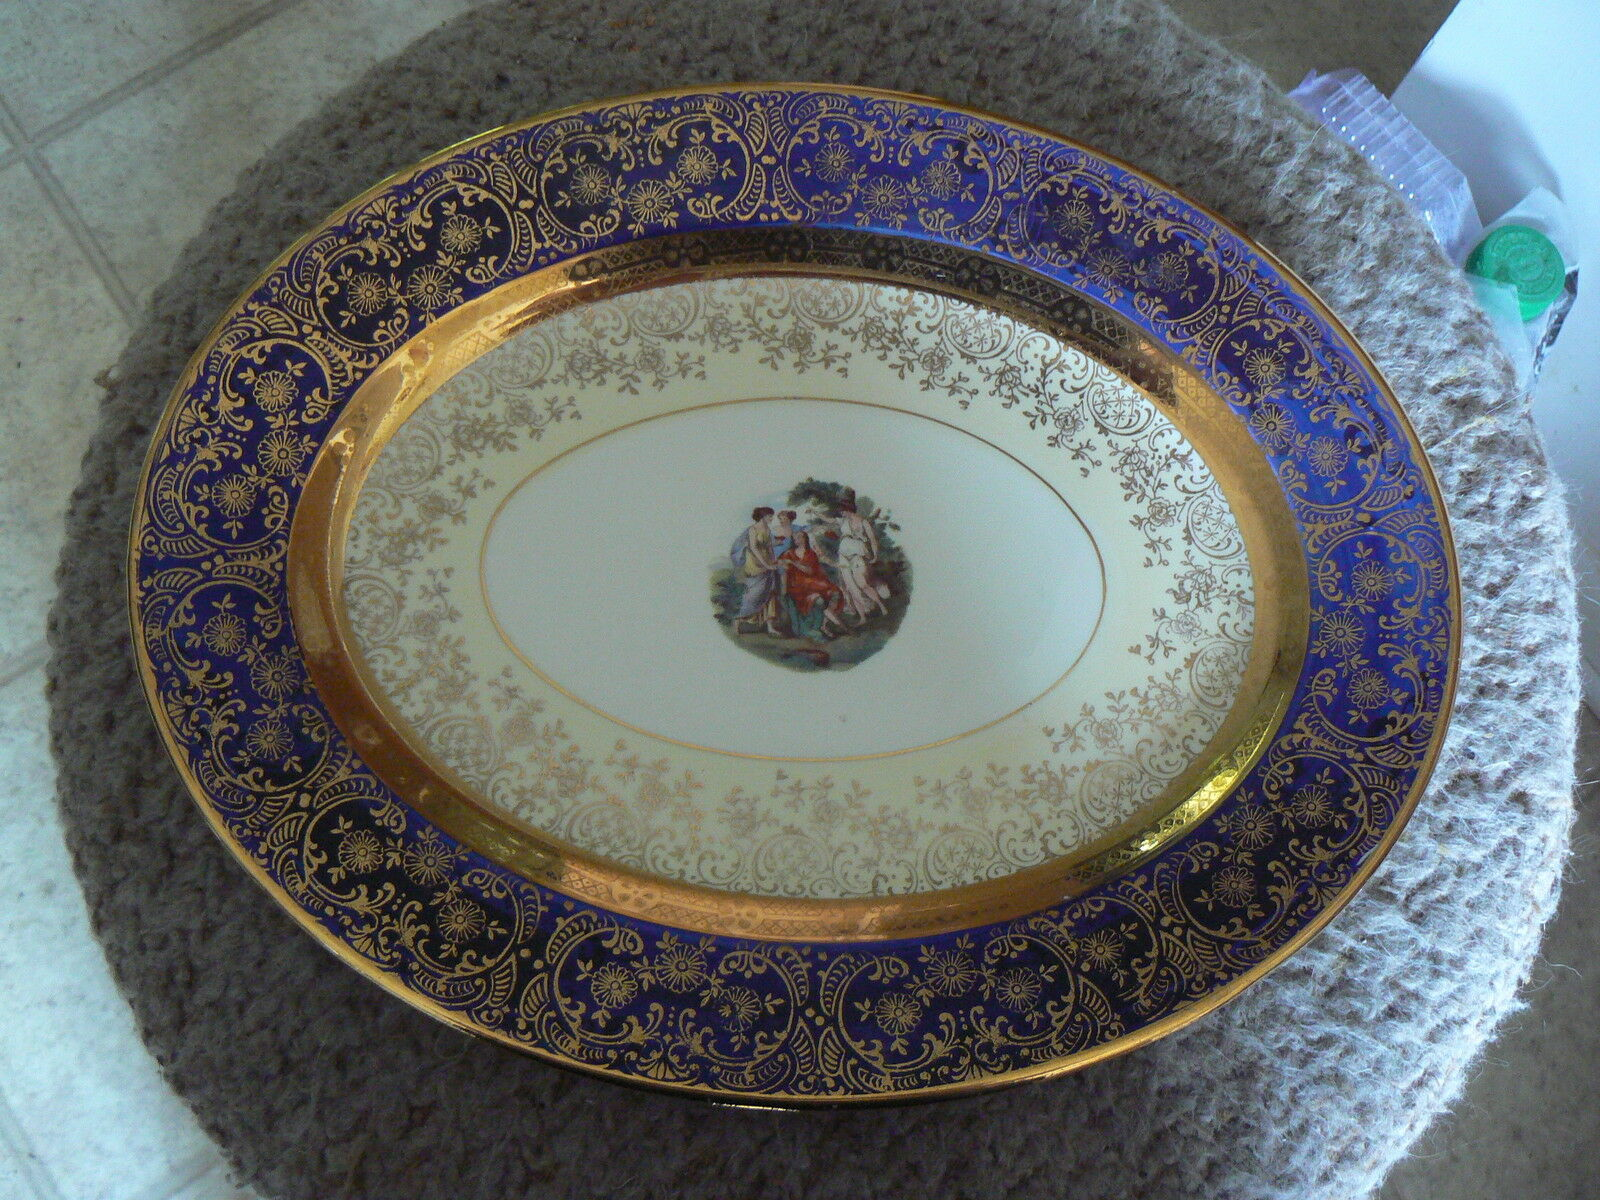 Primary image for Homer Laughlin Bromley 11 3/4 oval platter 1 available